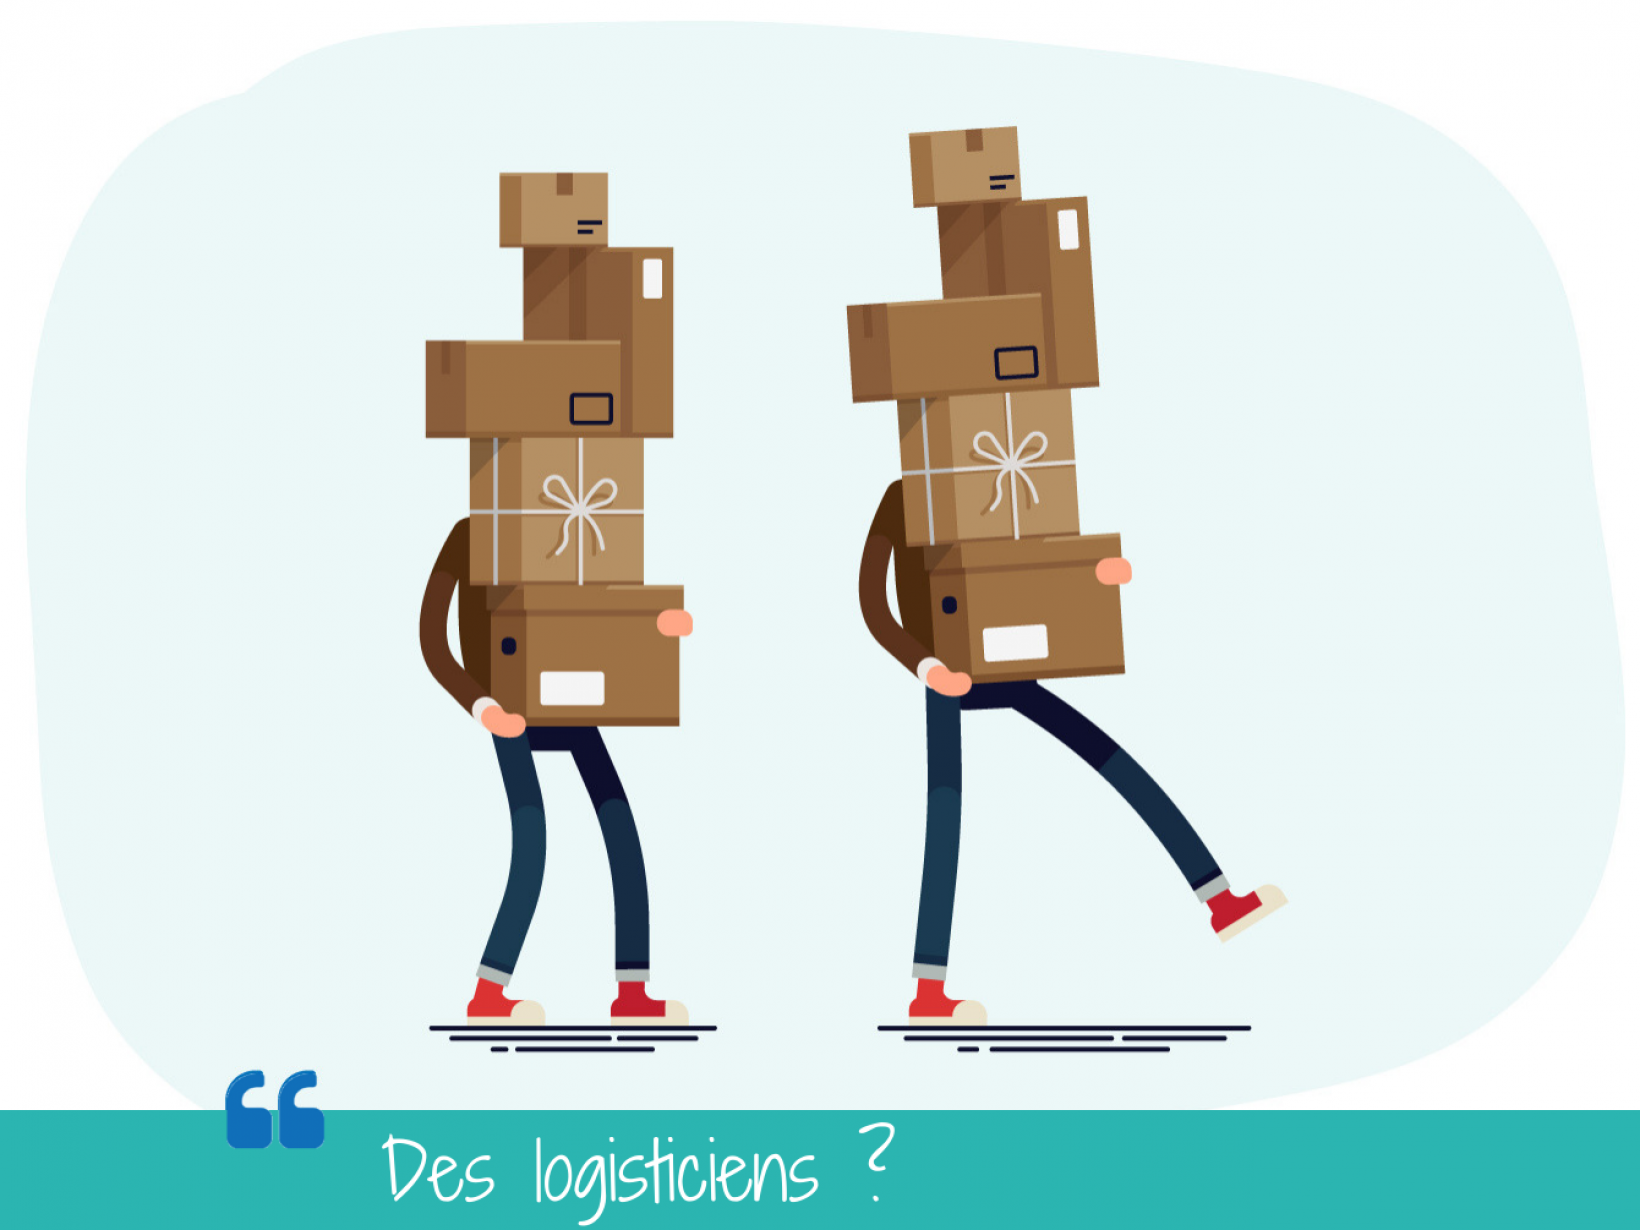 des logisticiens ?